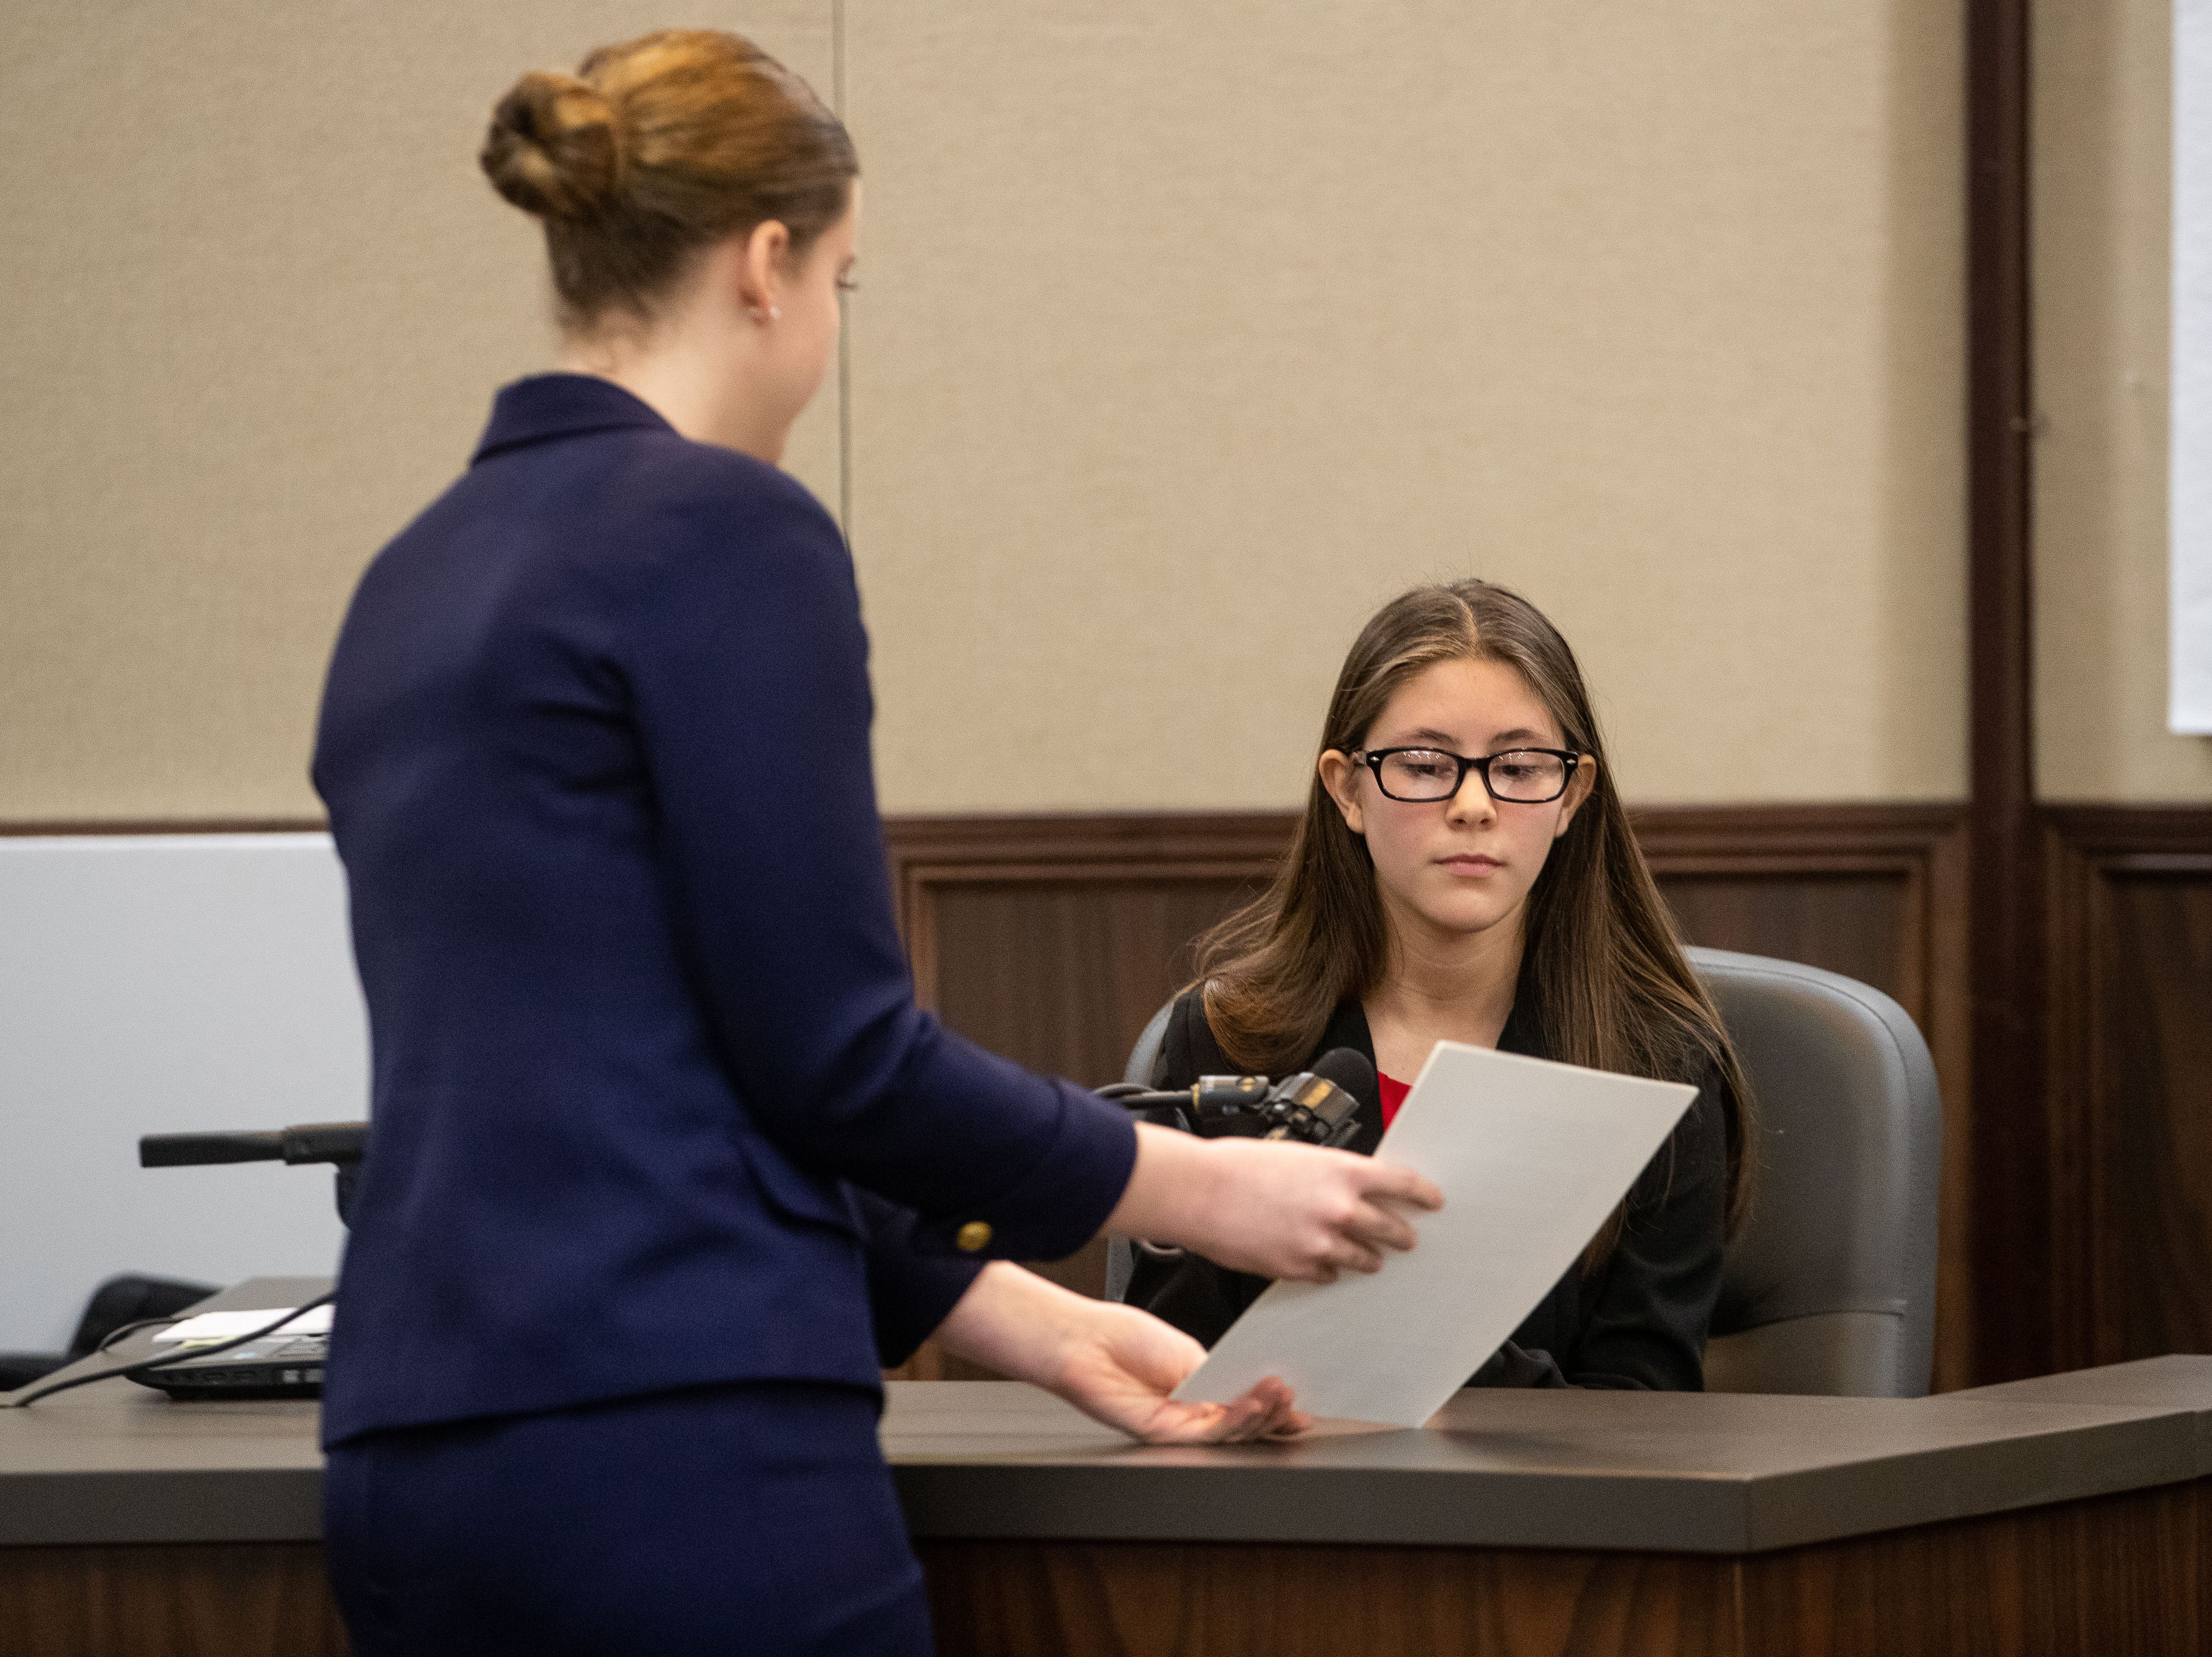 Incarnate Word Academy competes against Ray High School in a Mock Trial competition at the Nueces County Courthouse on Saturday, Feb. 2, 2019.